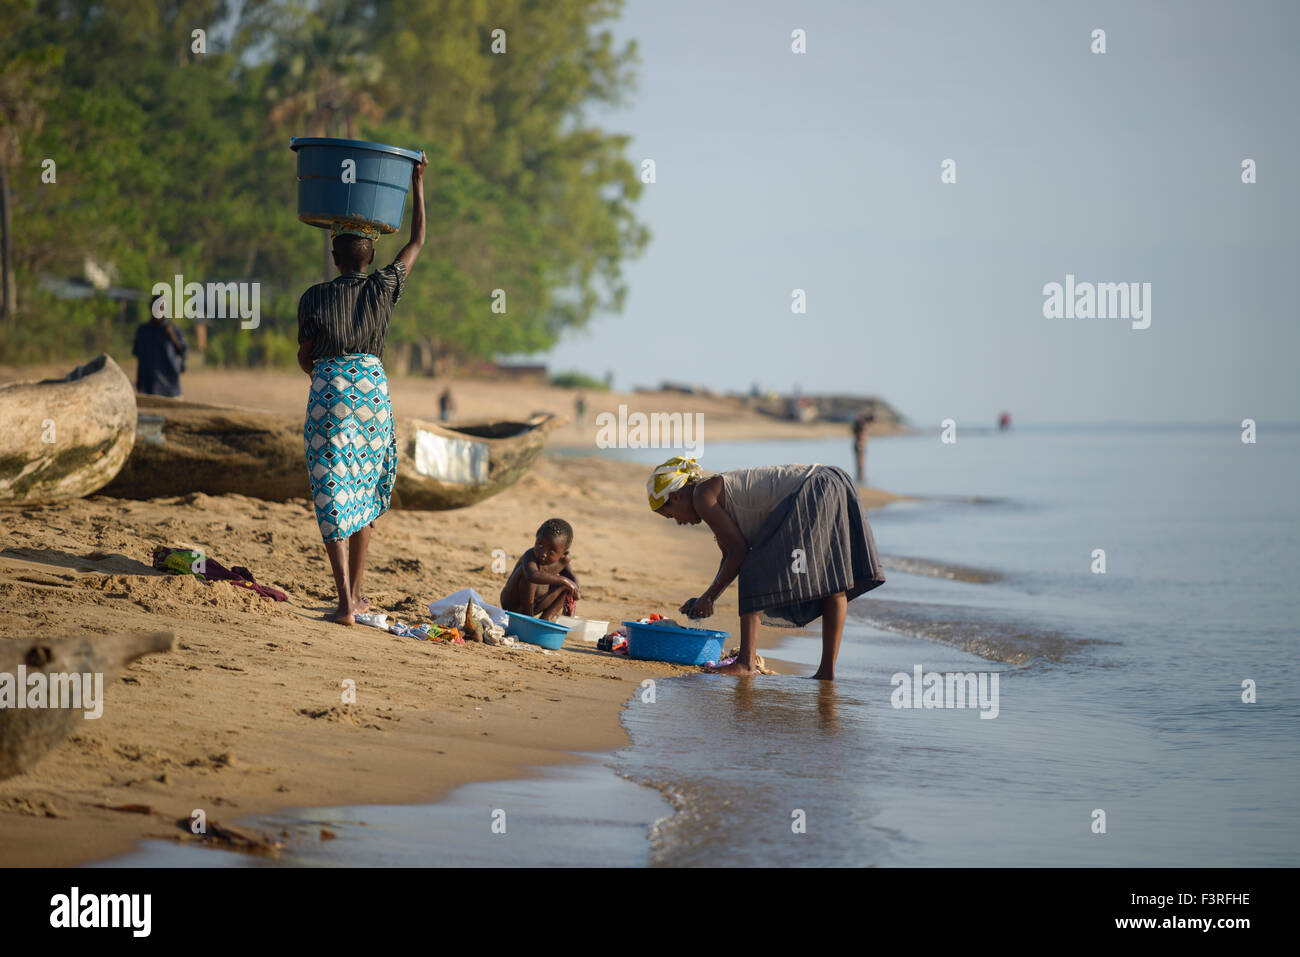 Life at Lake Malawi, Africa - Stock Image